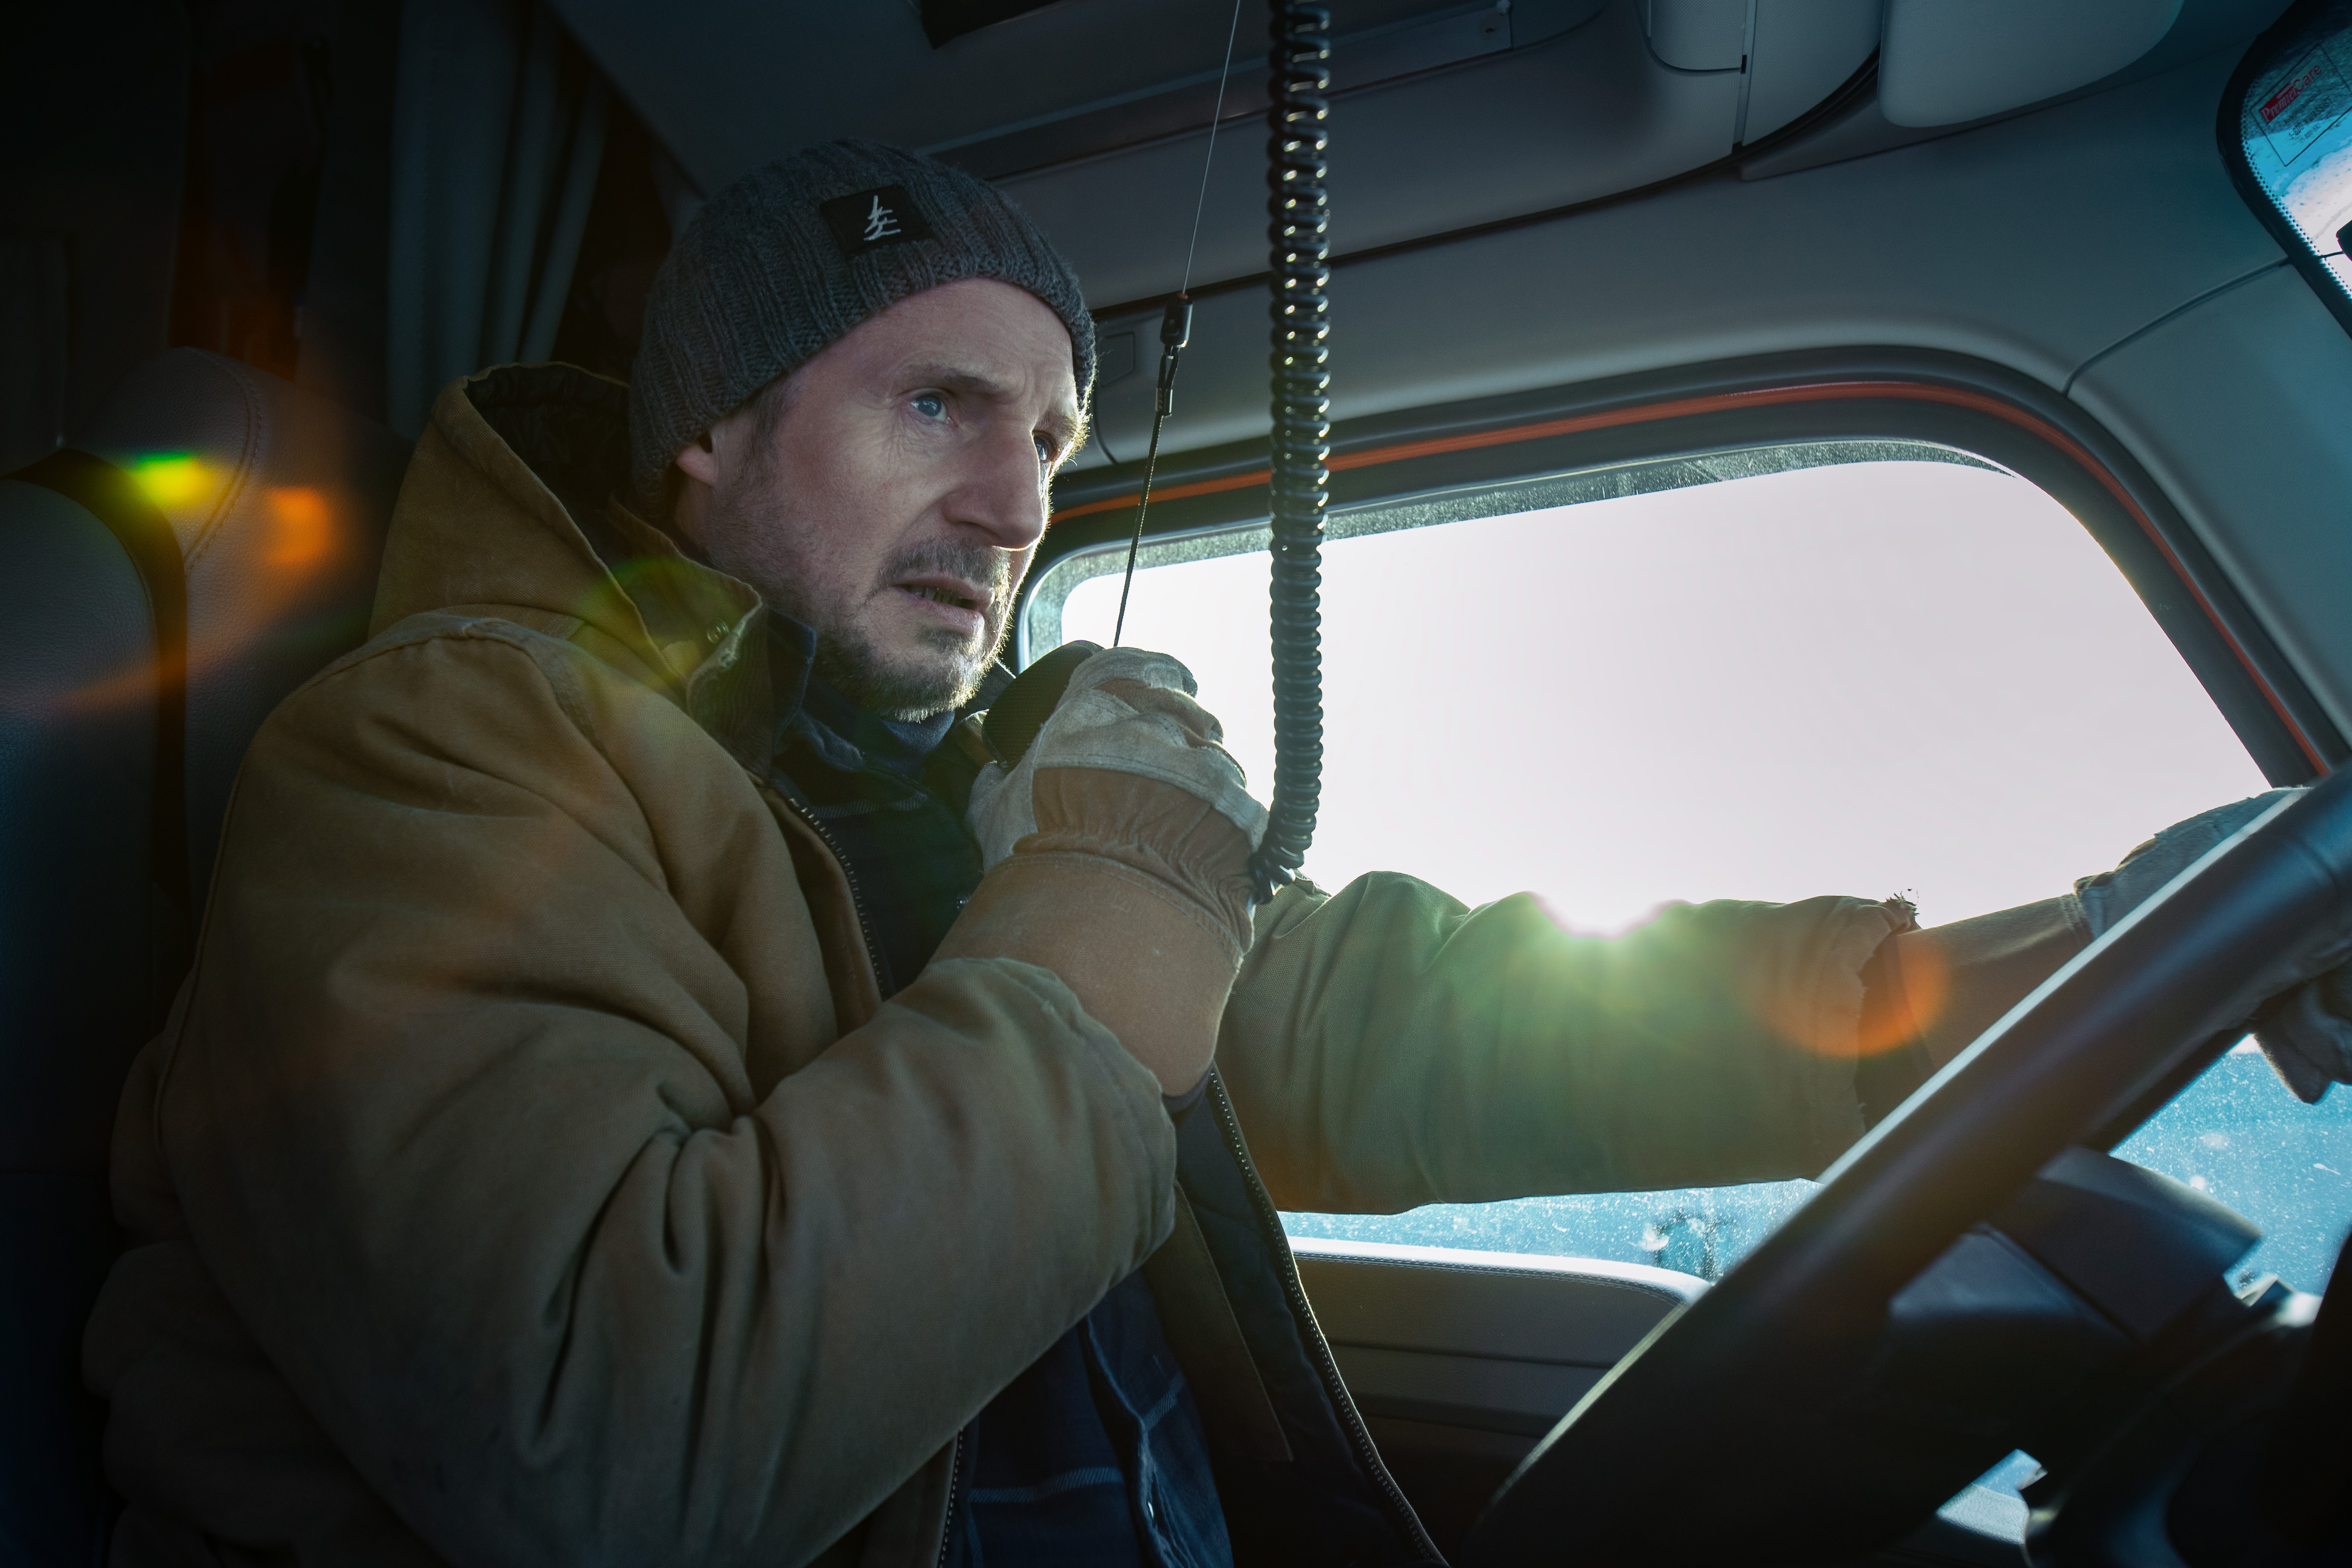 Liam Neeson drives over icy roads in the aptly titled 'The Ice Road'